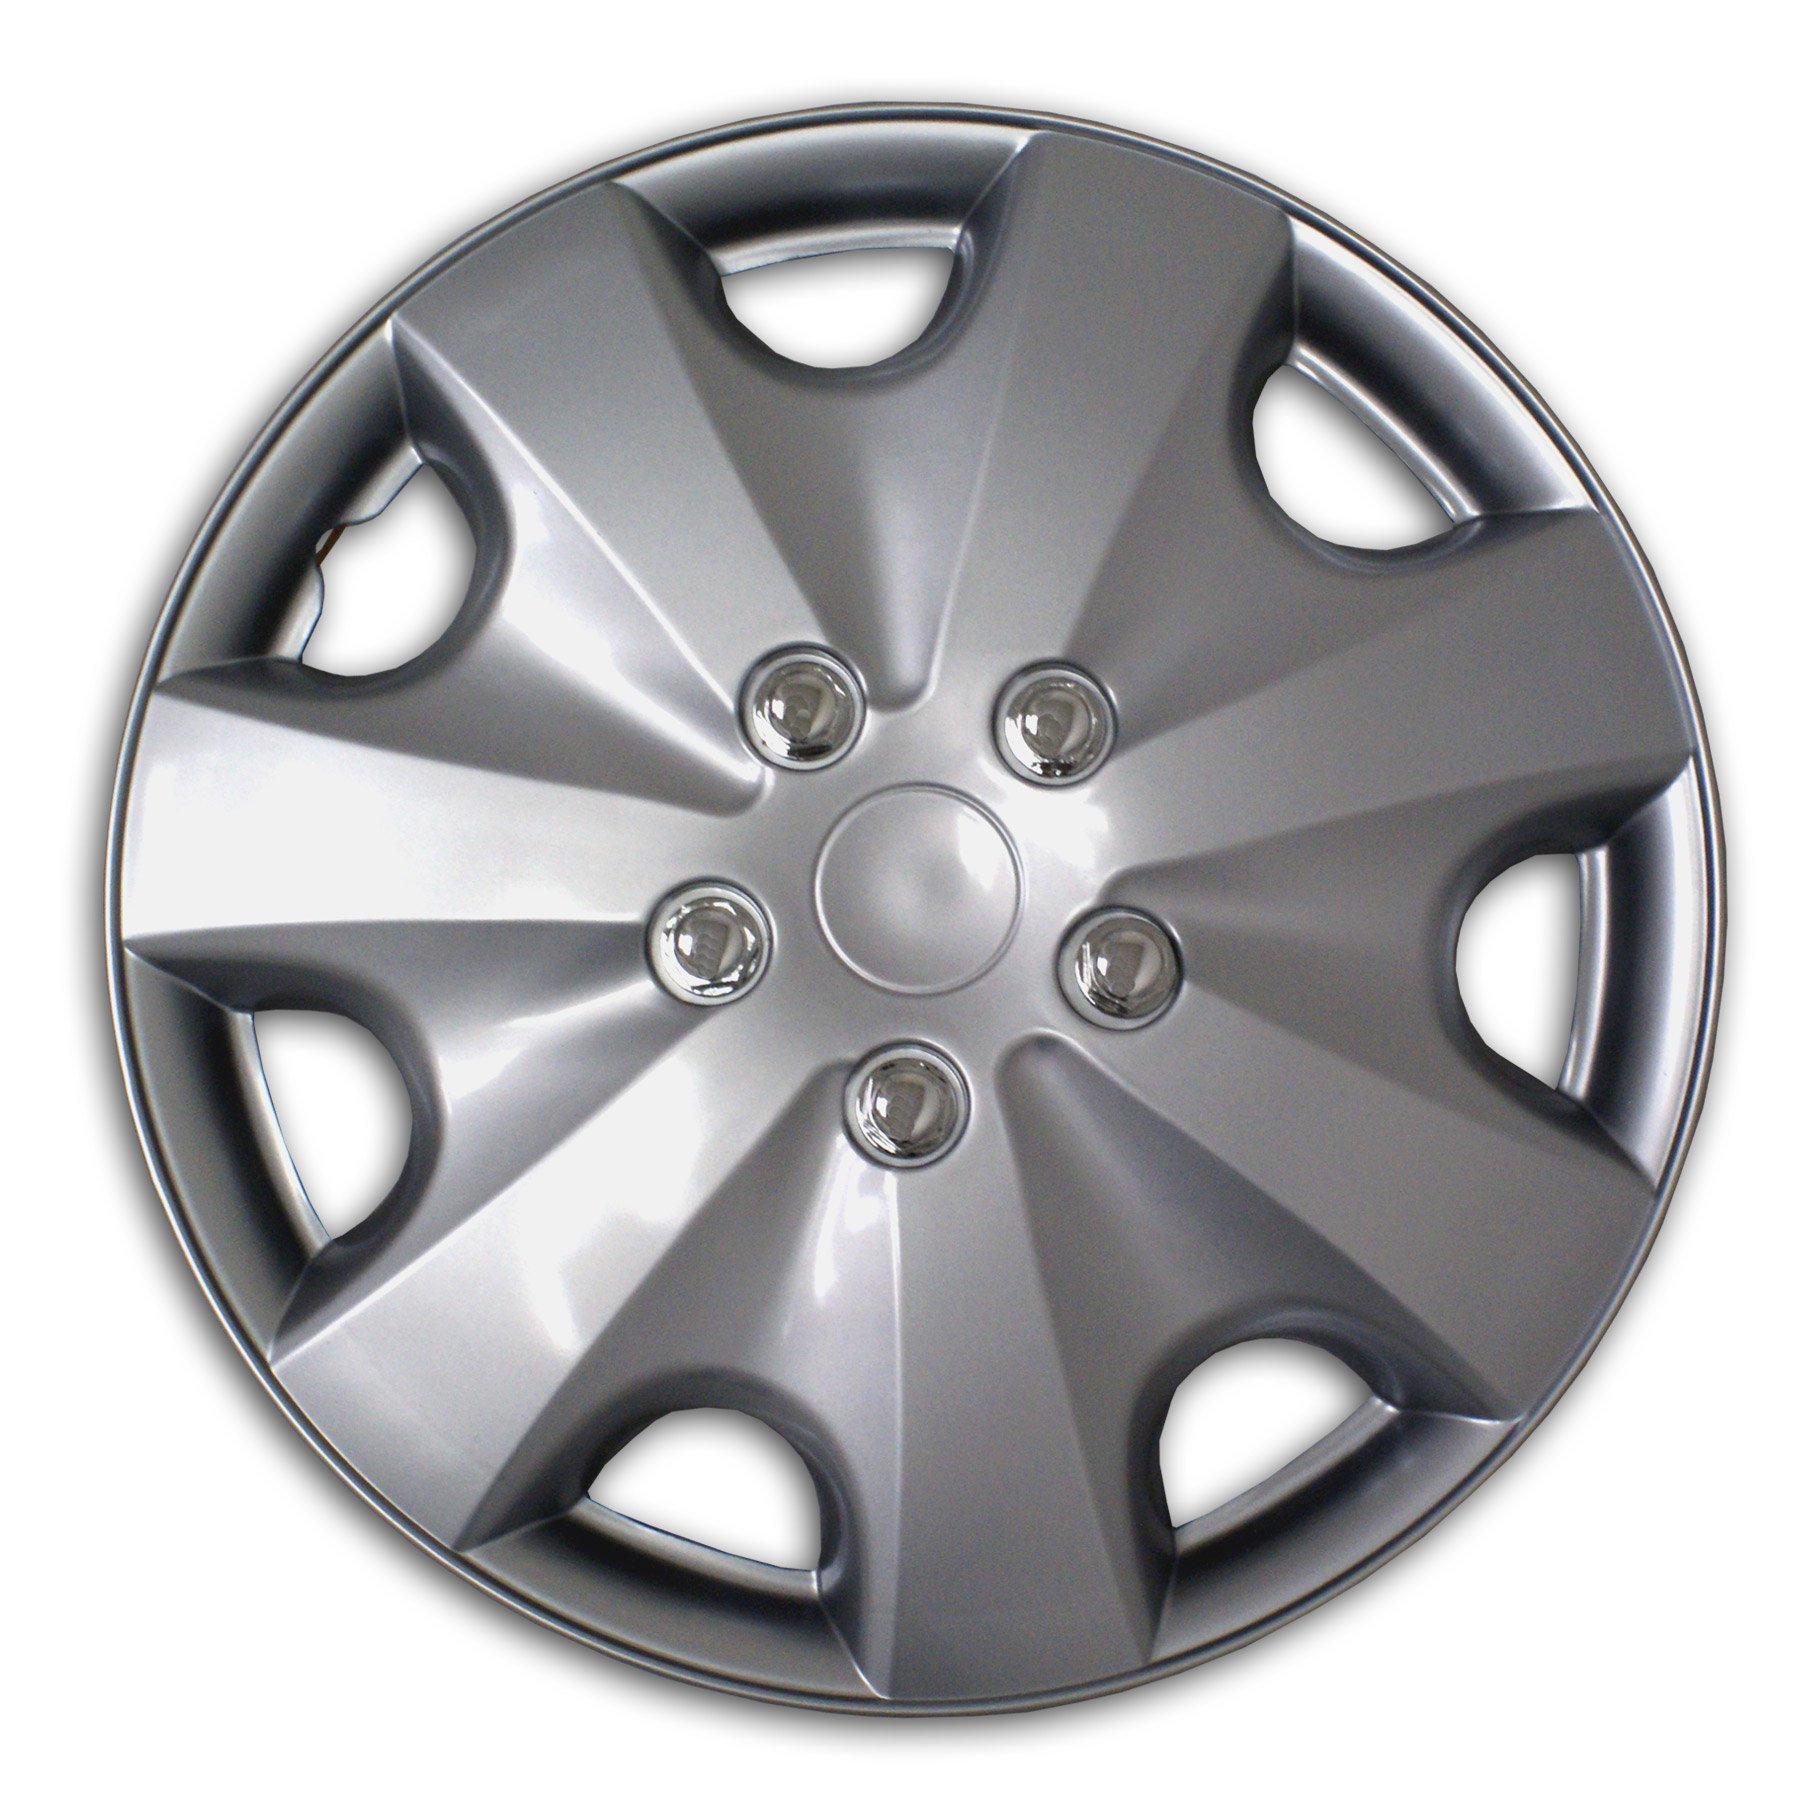 TuningPros WSC2-051S16 Hubcaps Wheel Skin Cover Type 2 16-Inches Silver Set of 4 by TuningPros (Image #1)